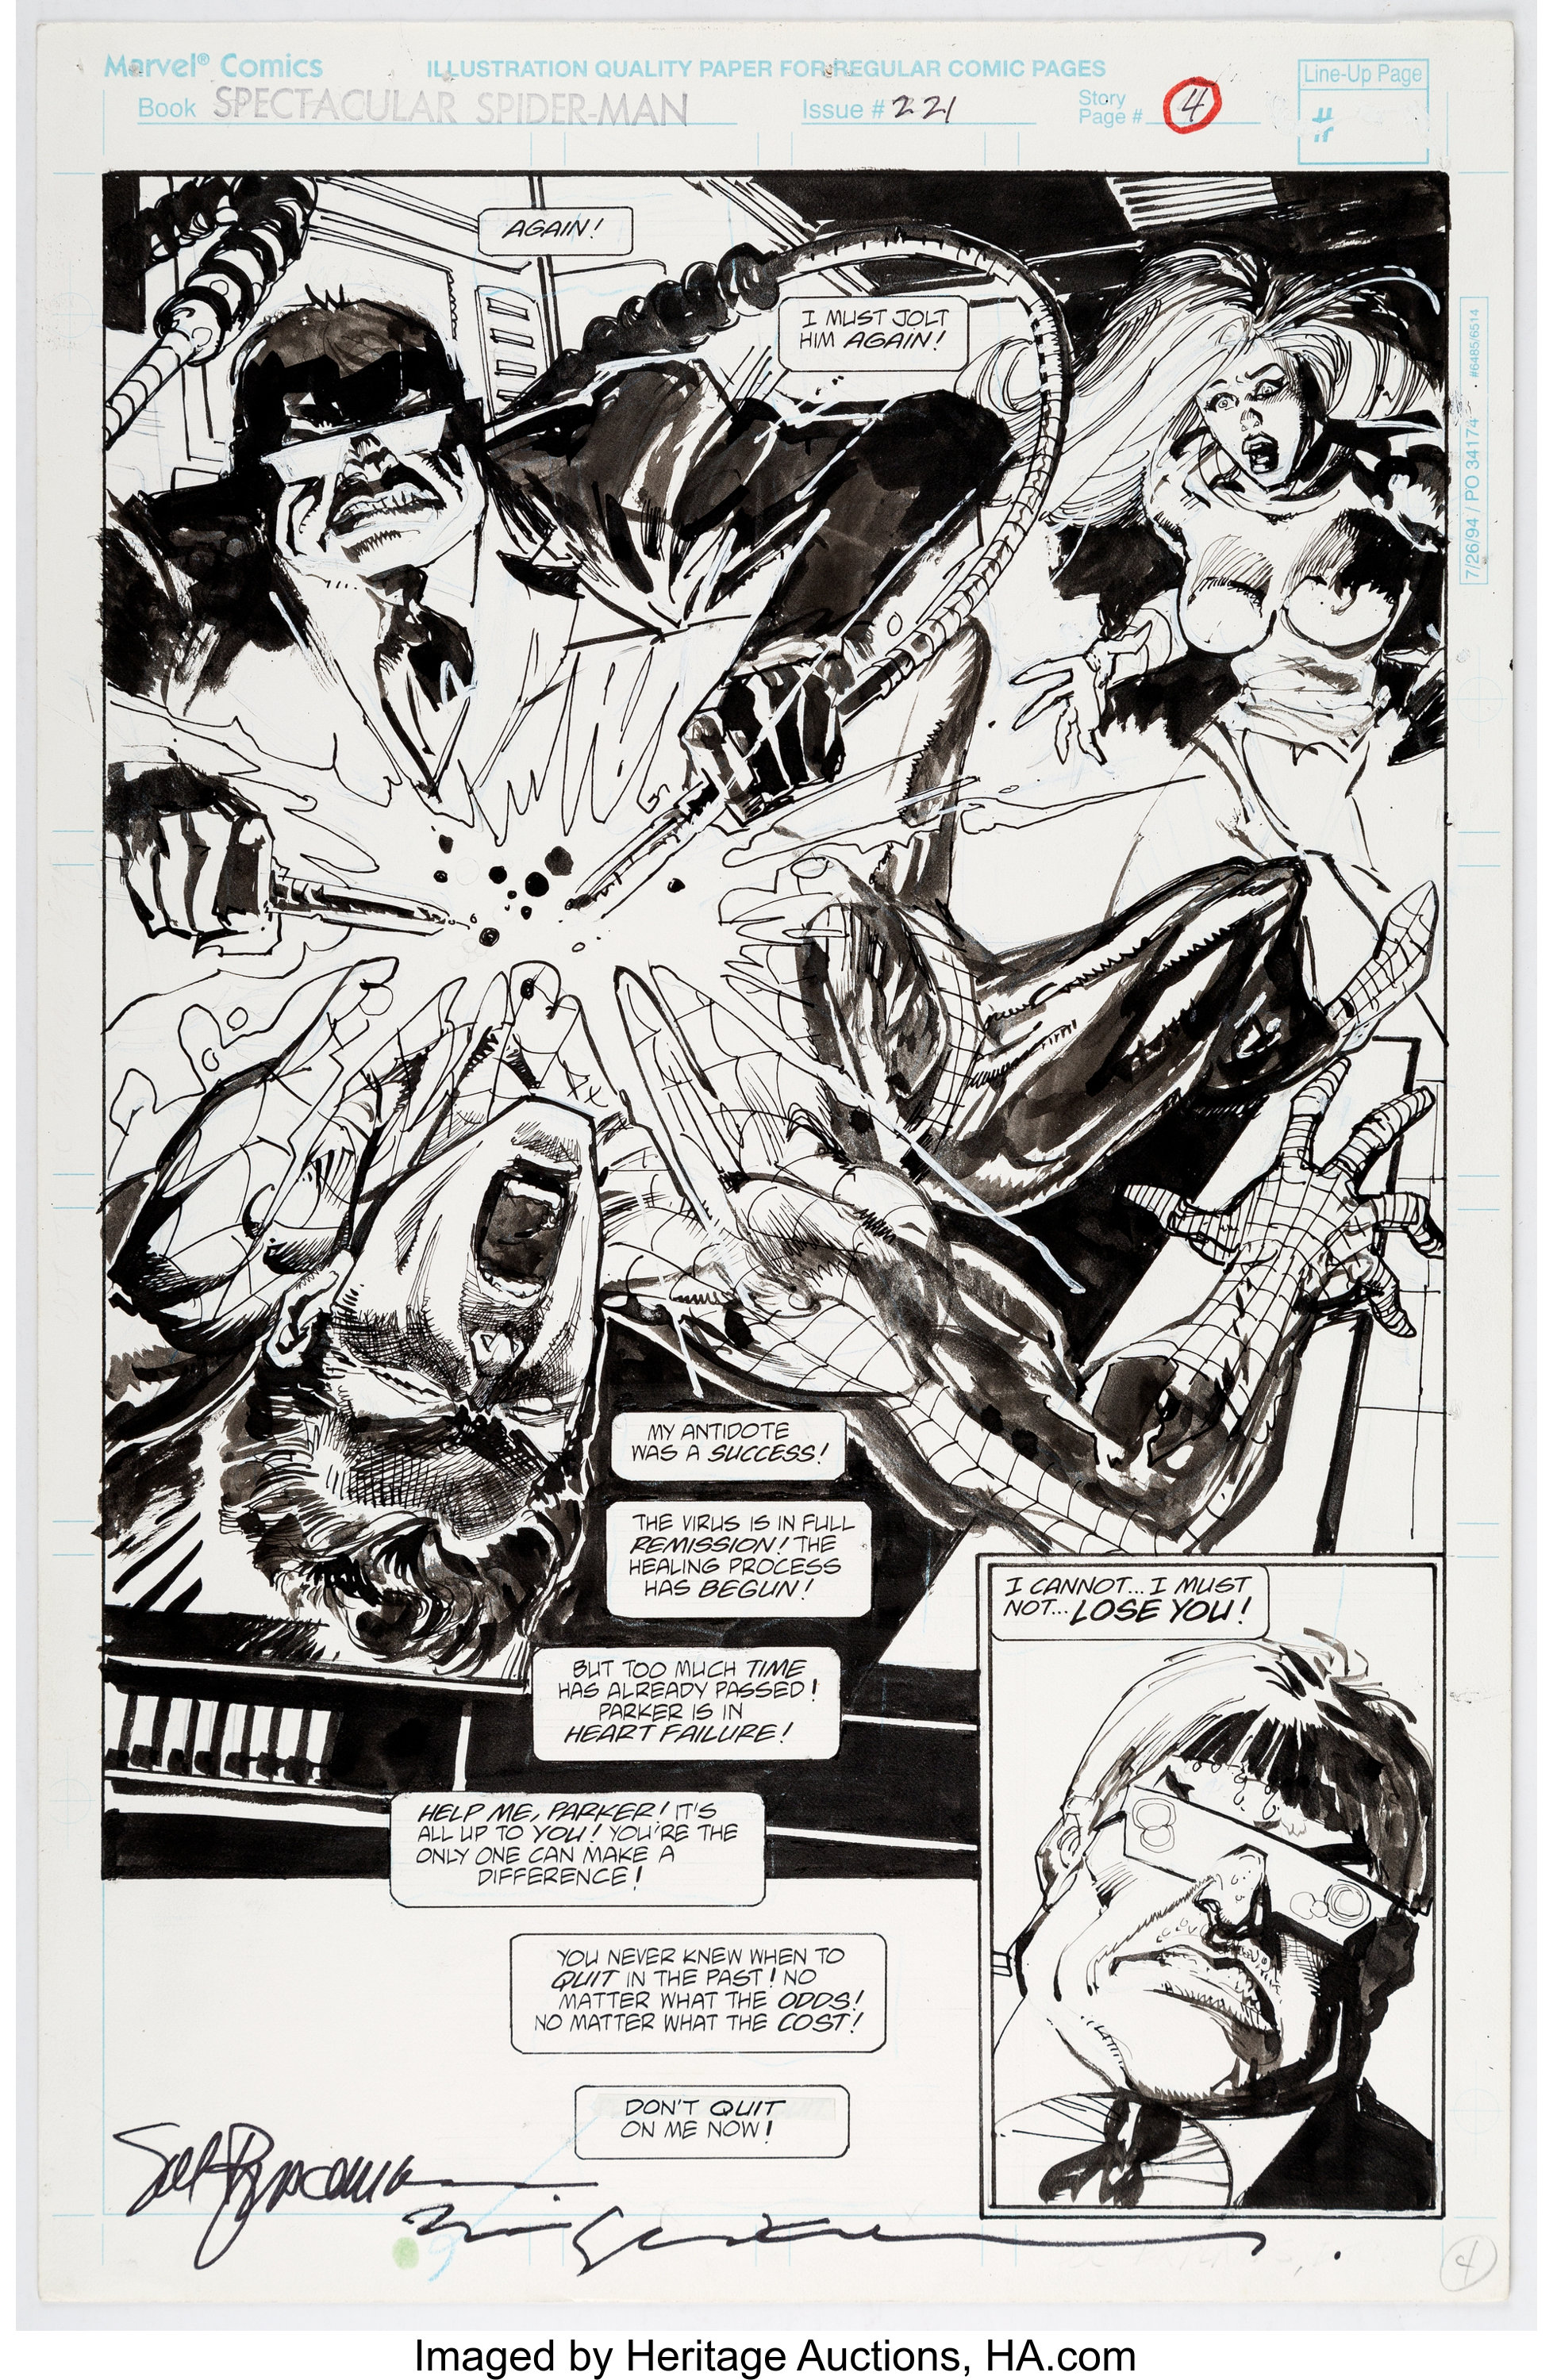 Sal Buscema and Bill Sienkiewicz The Spectacular Spider-Man #221